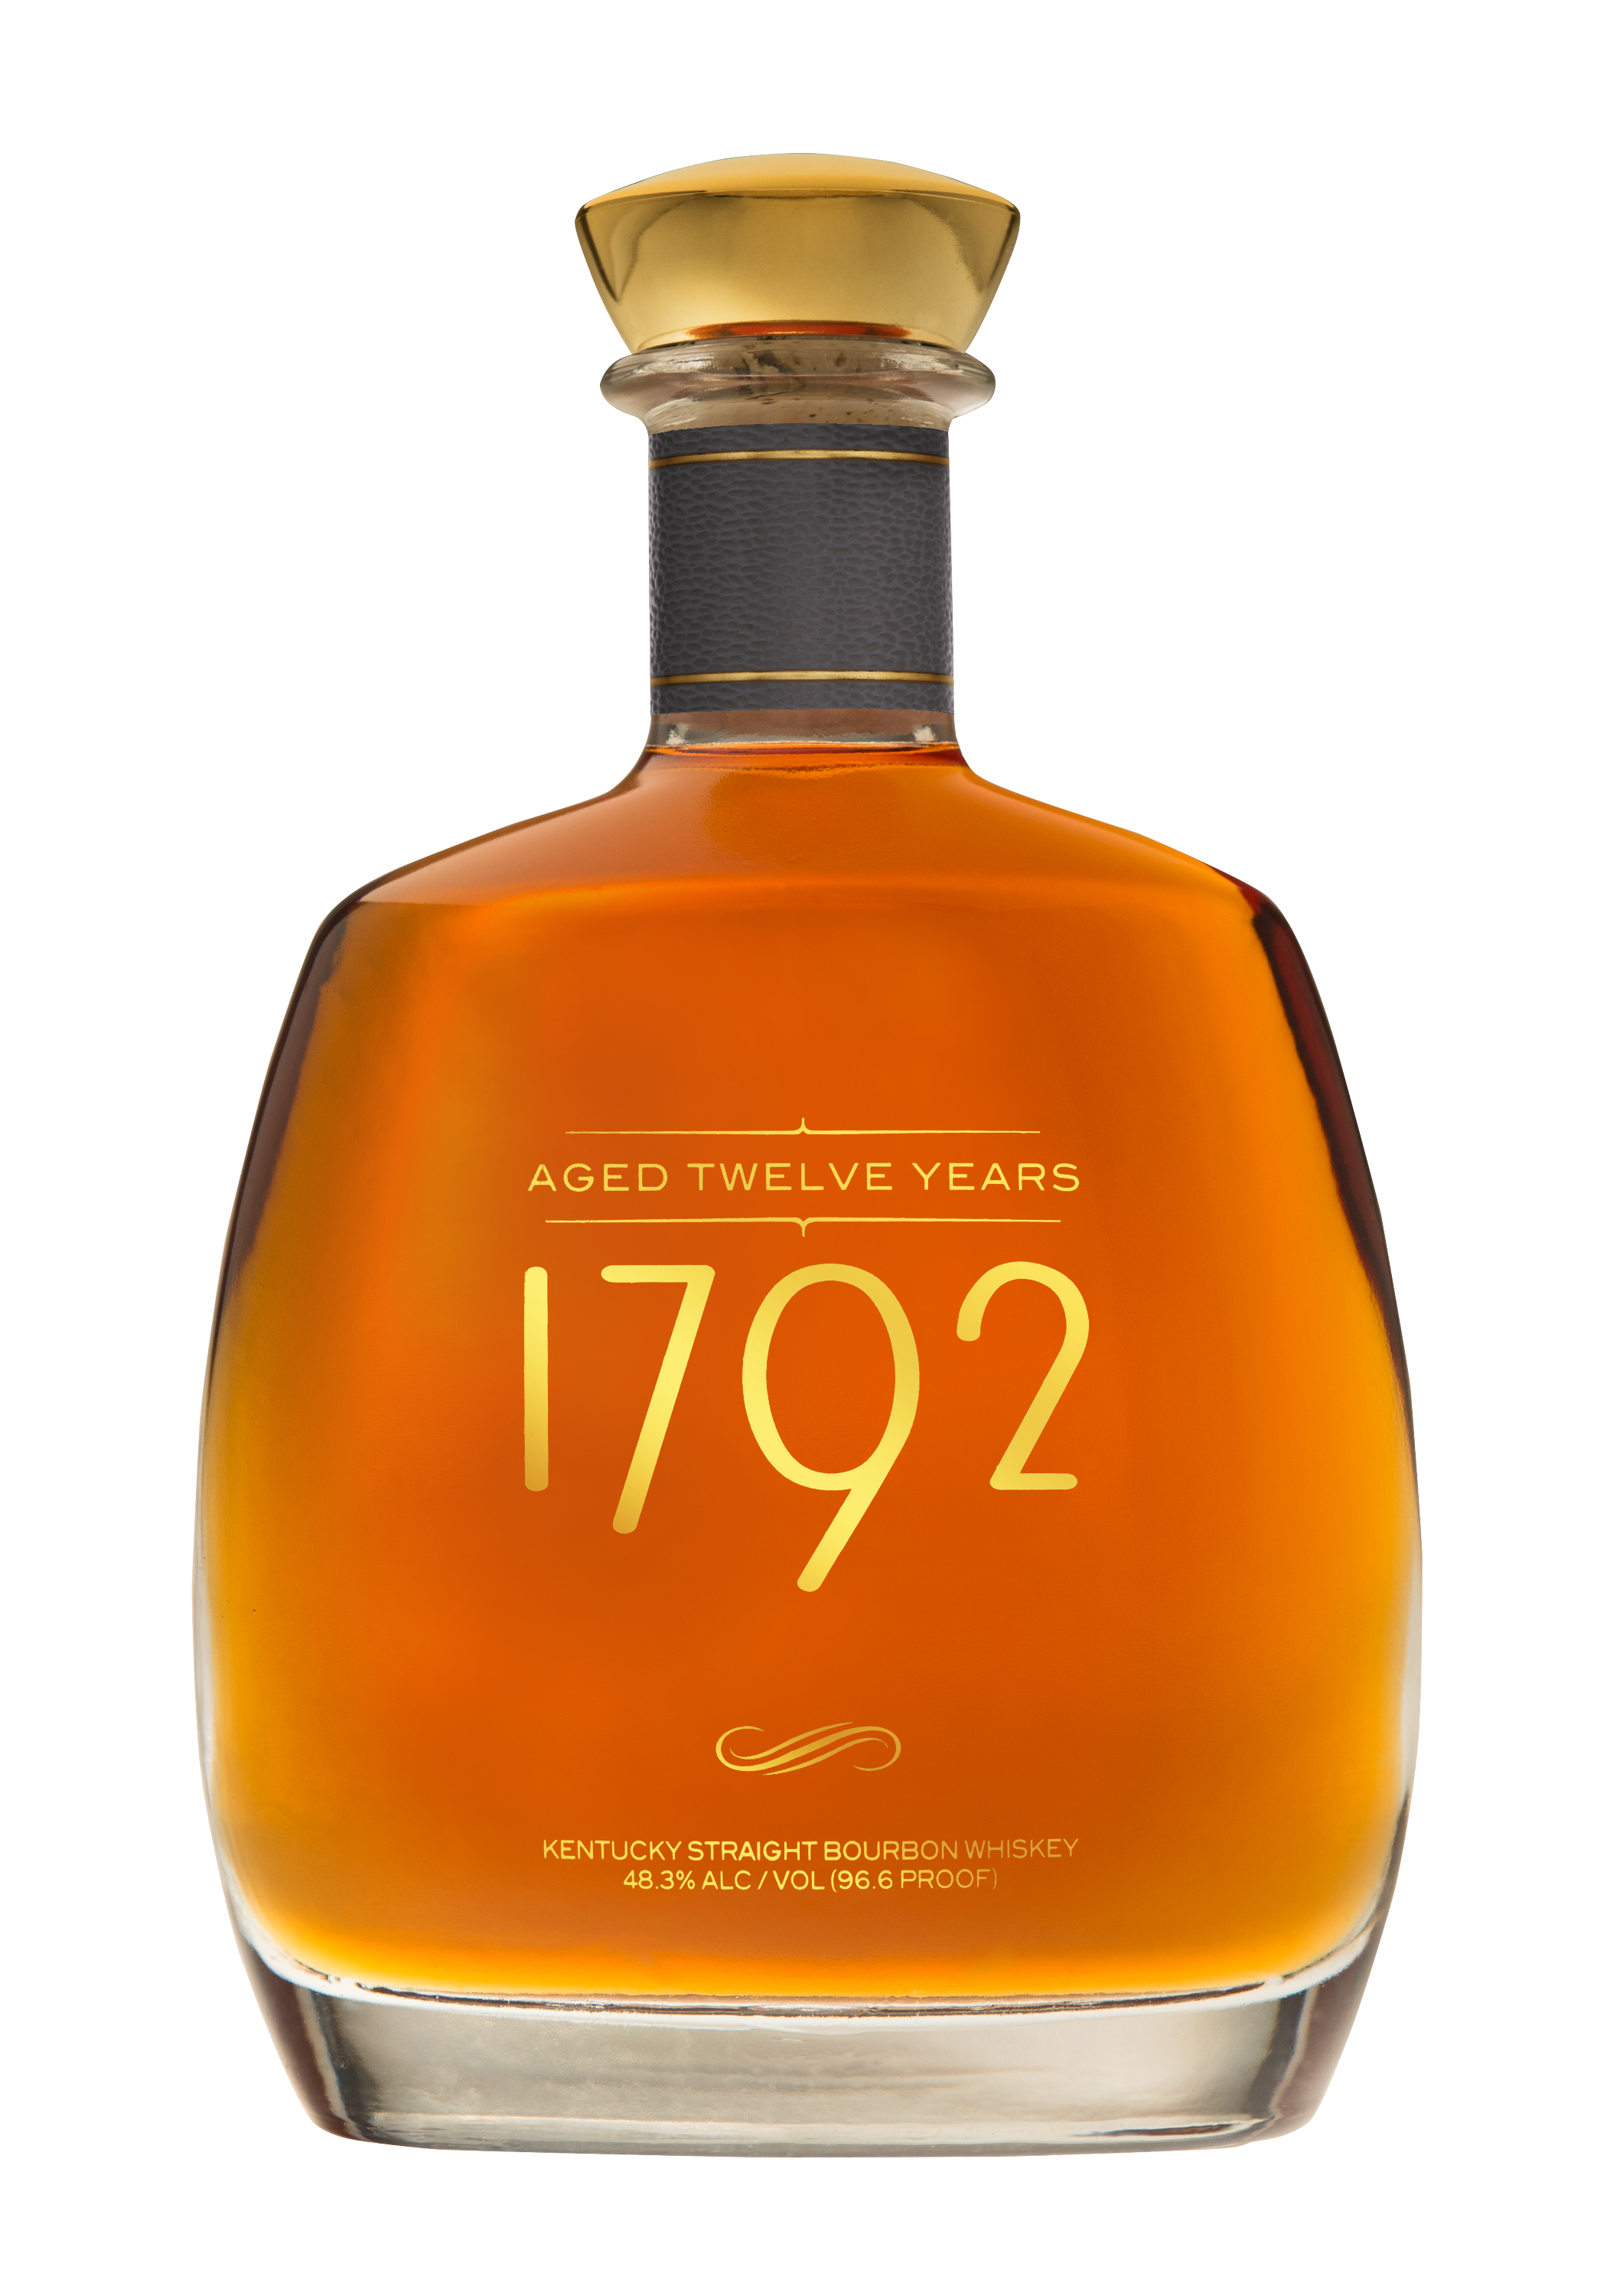 Press Release: Barton 1792 Distillery Introduces 12 Year Old Small Batch Bourbon